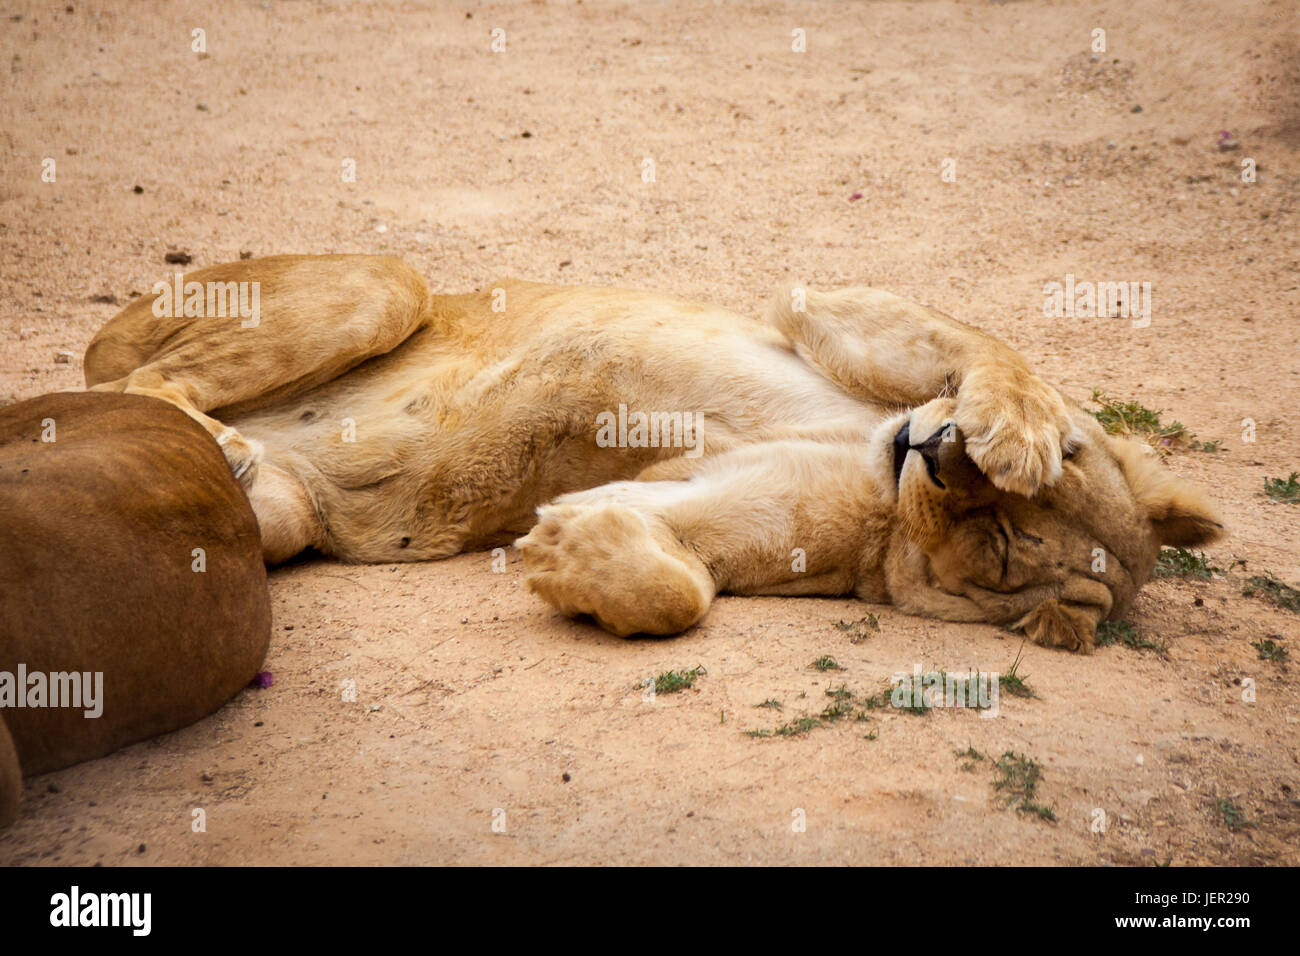 Tired Lioness Hiding her Face, Africa - Stock Image